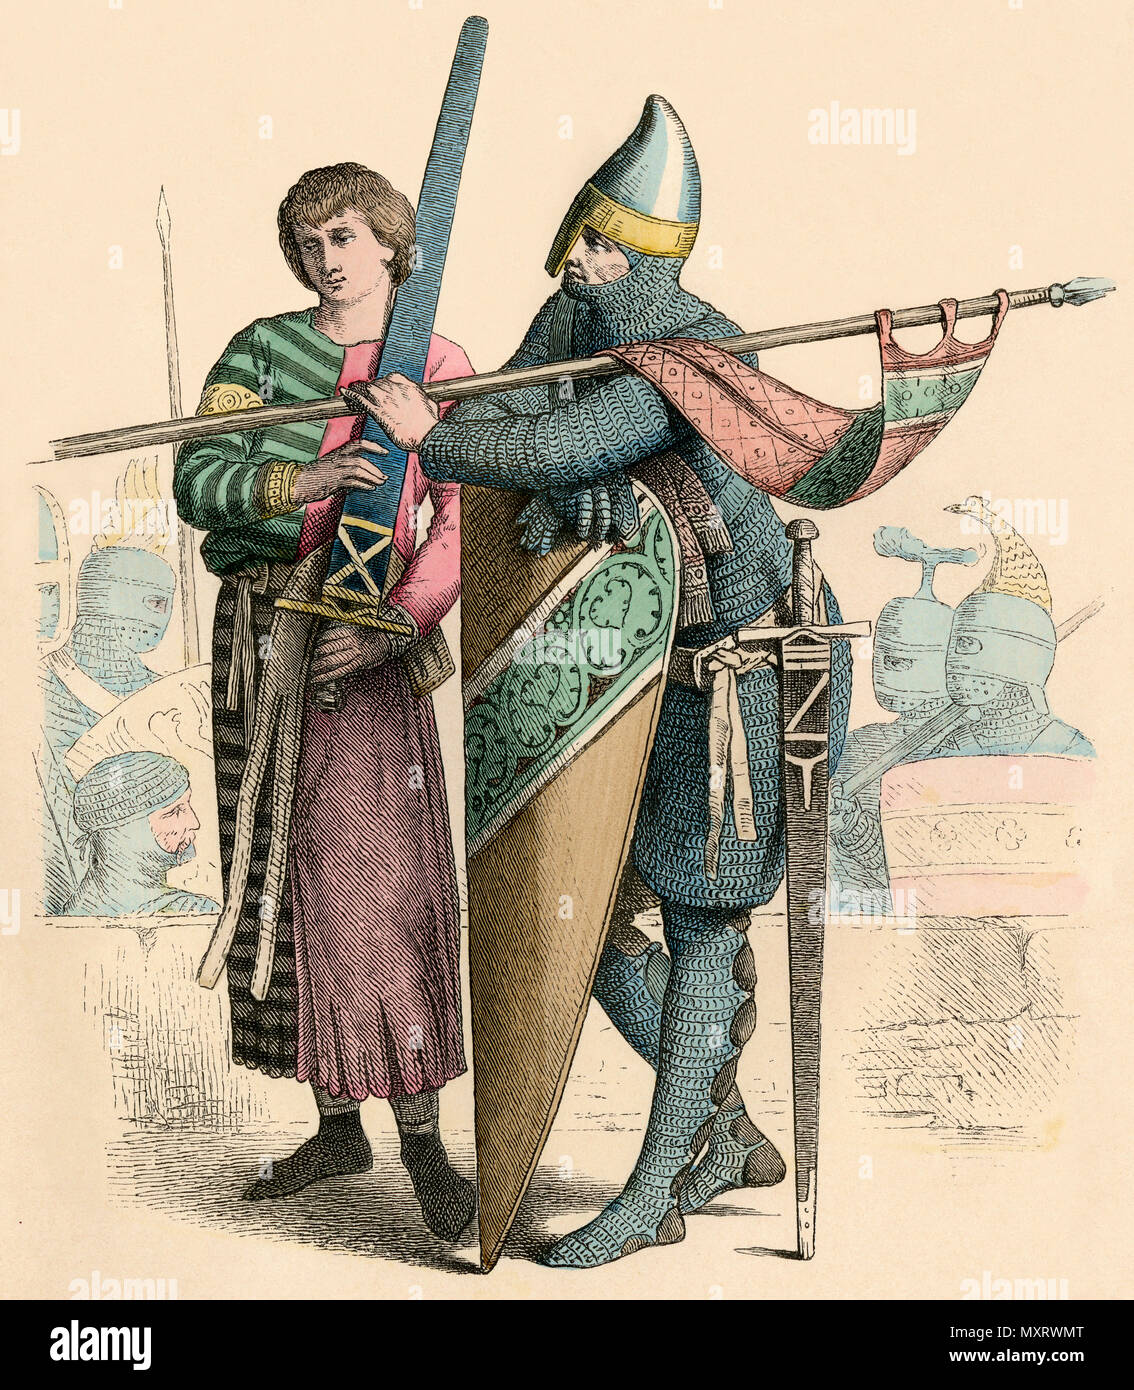 Squire carrying a broadsword and a knight, 12th century. Hand-colored print - Stock Image